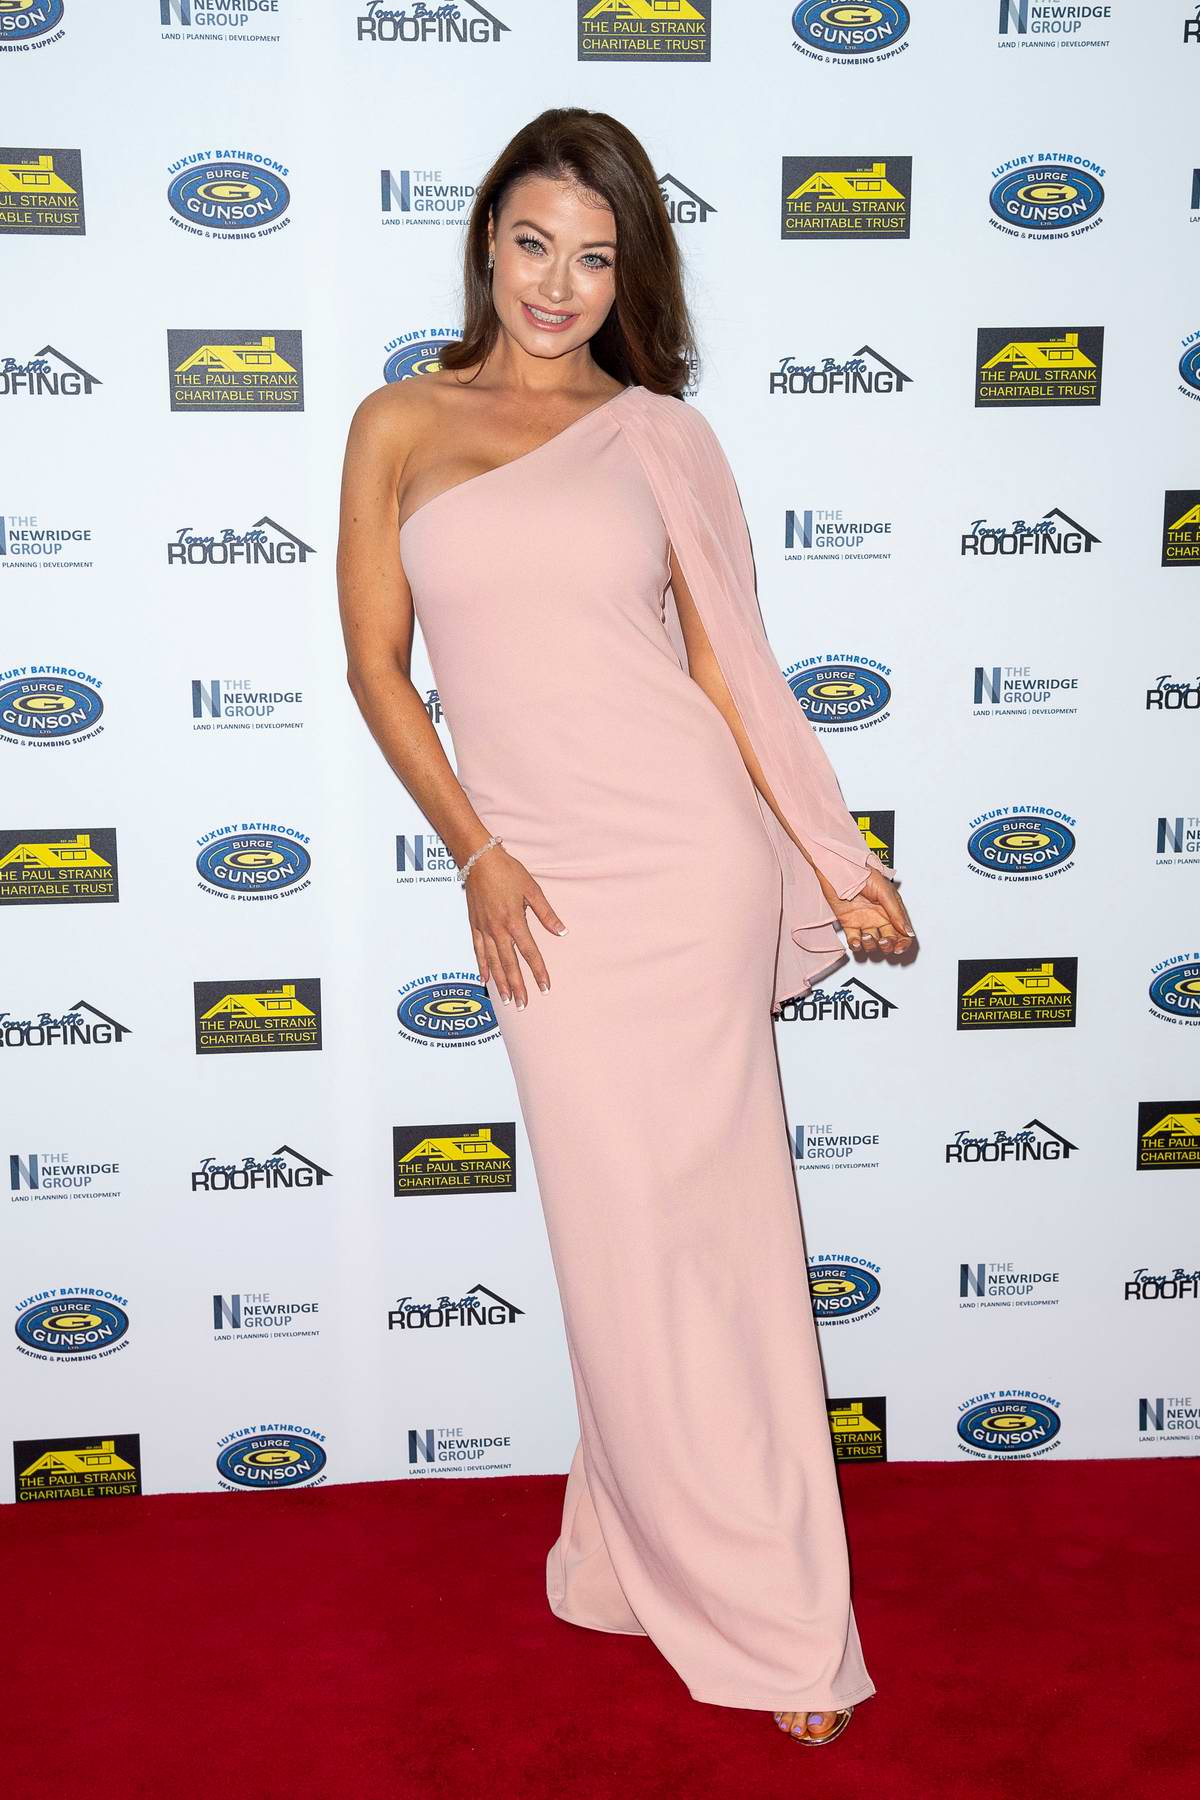 Jess Impiazzi attends The Paul Strank Charity Gala at Bank of England Sports Centre in London, UK